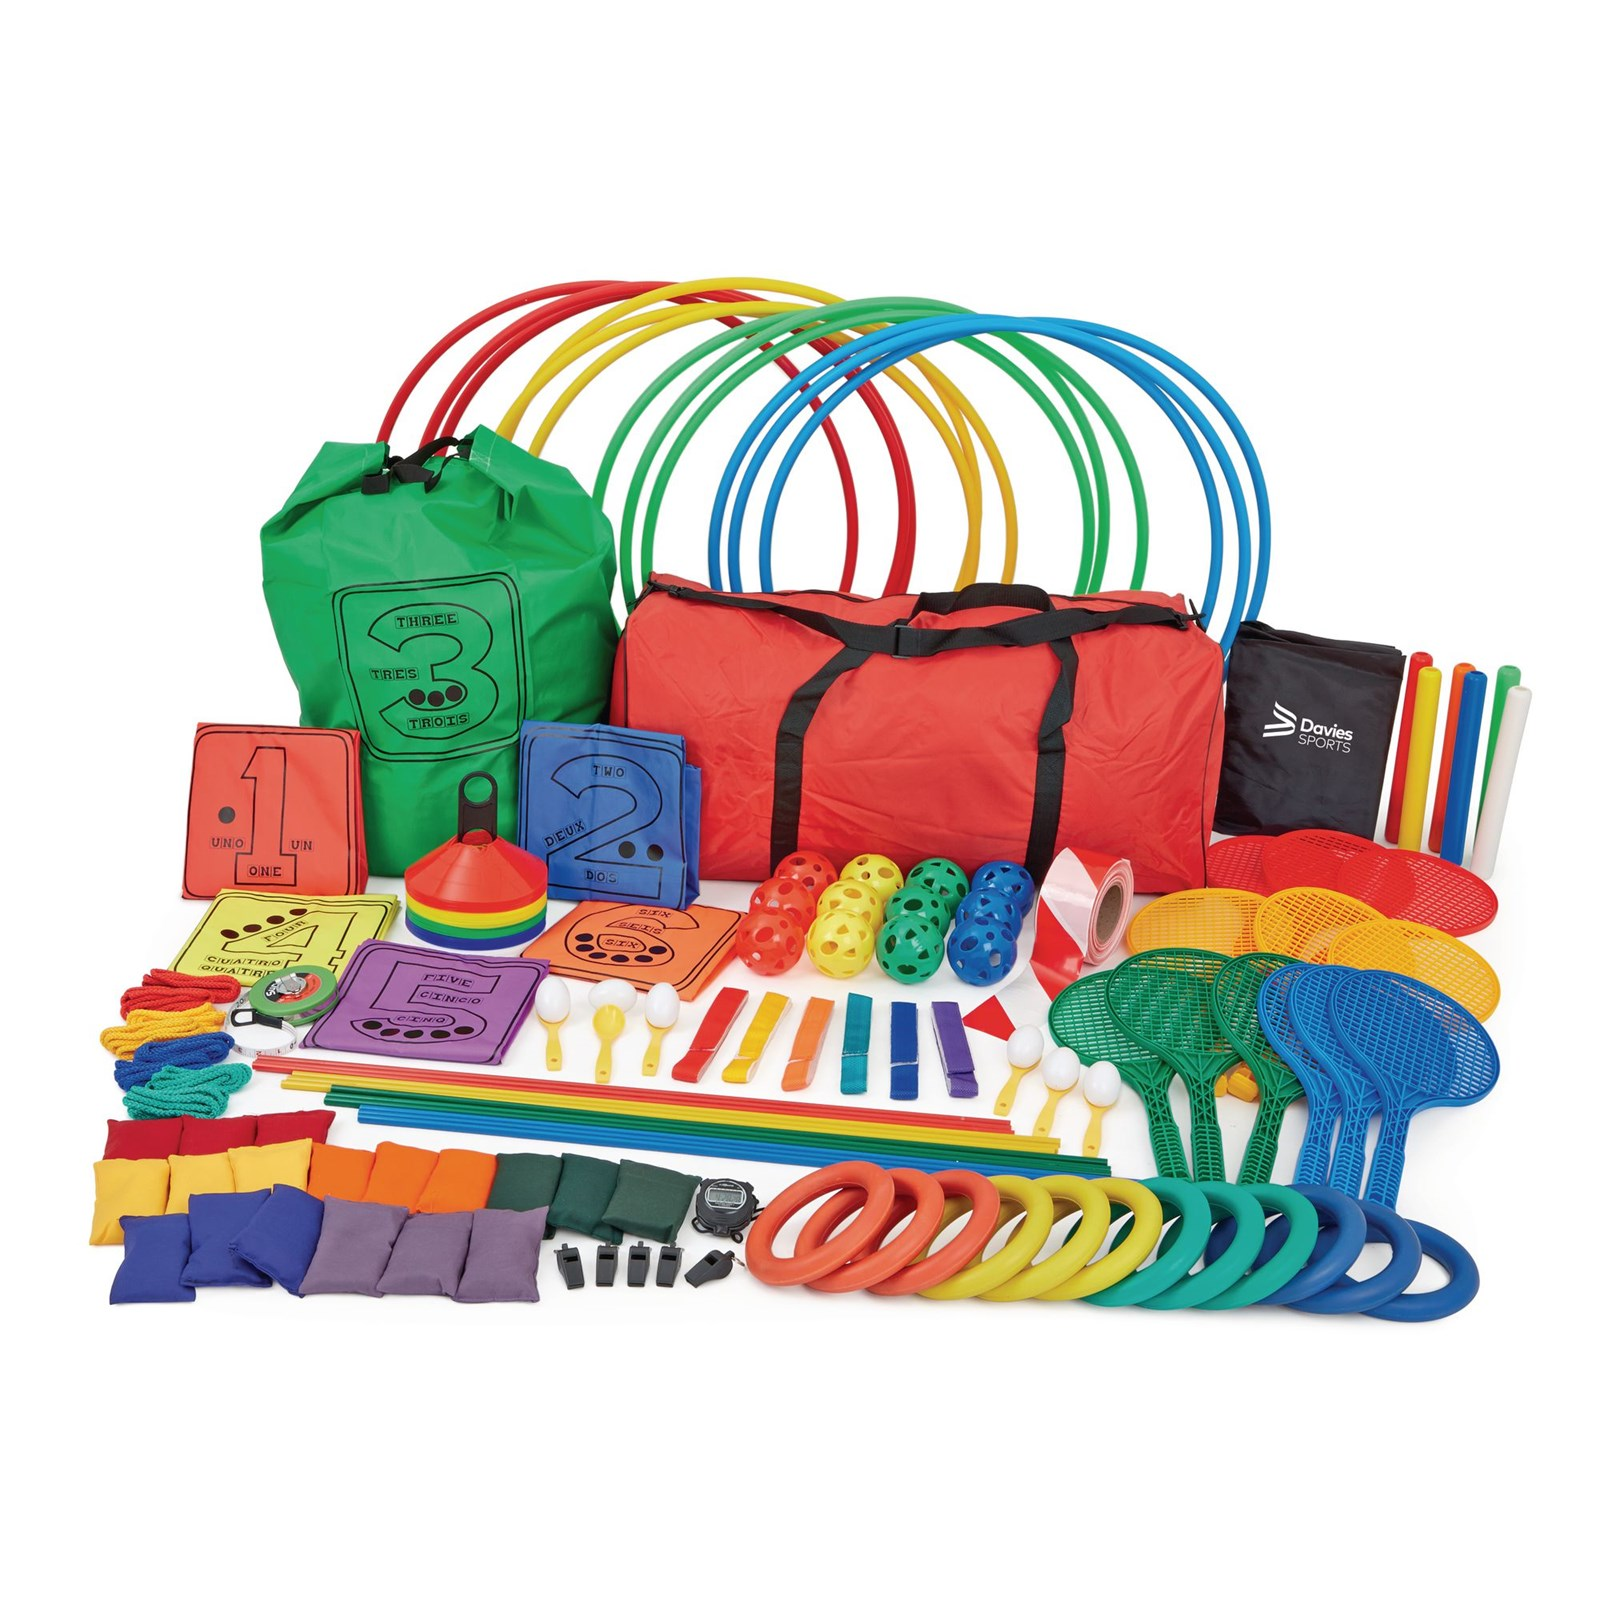 Primary Sports Day Pack